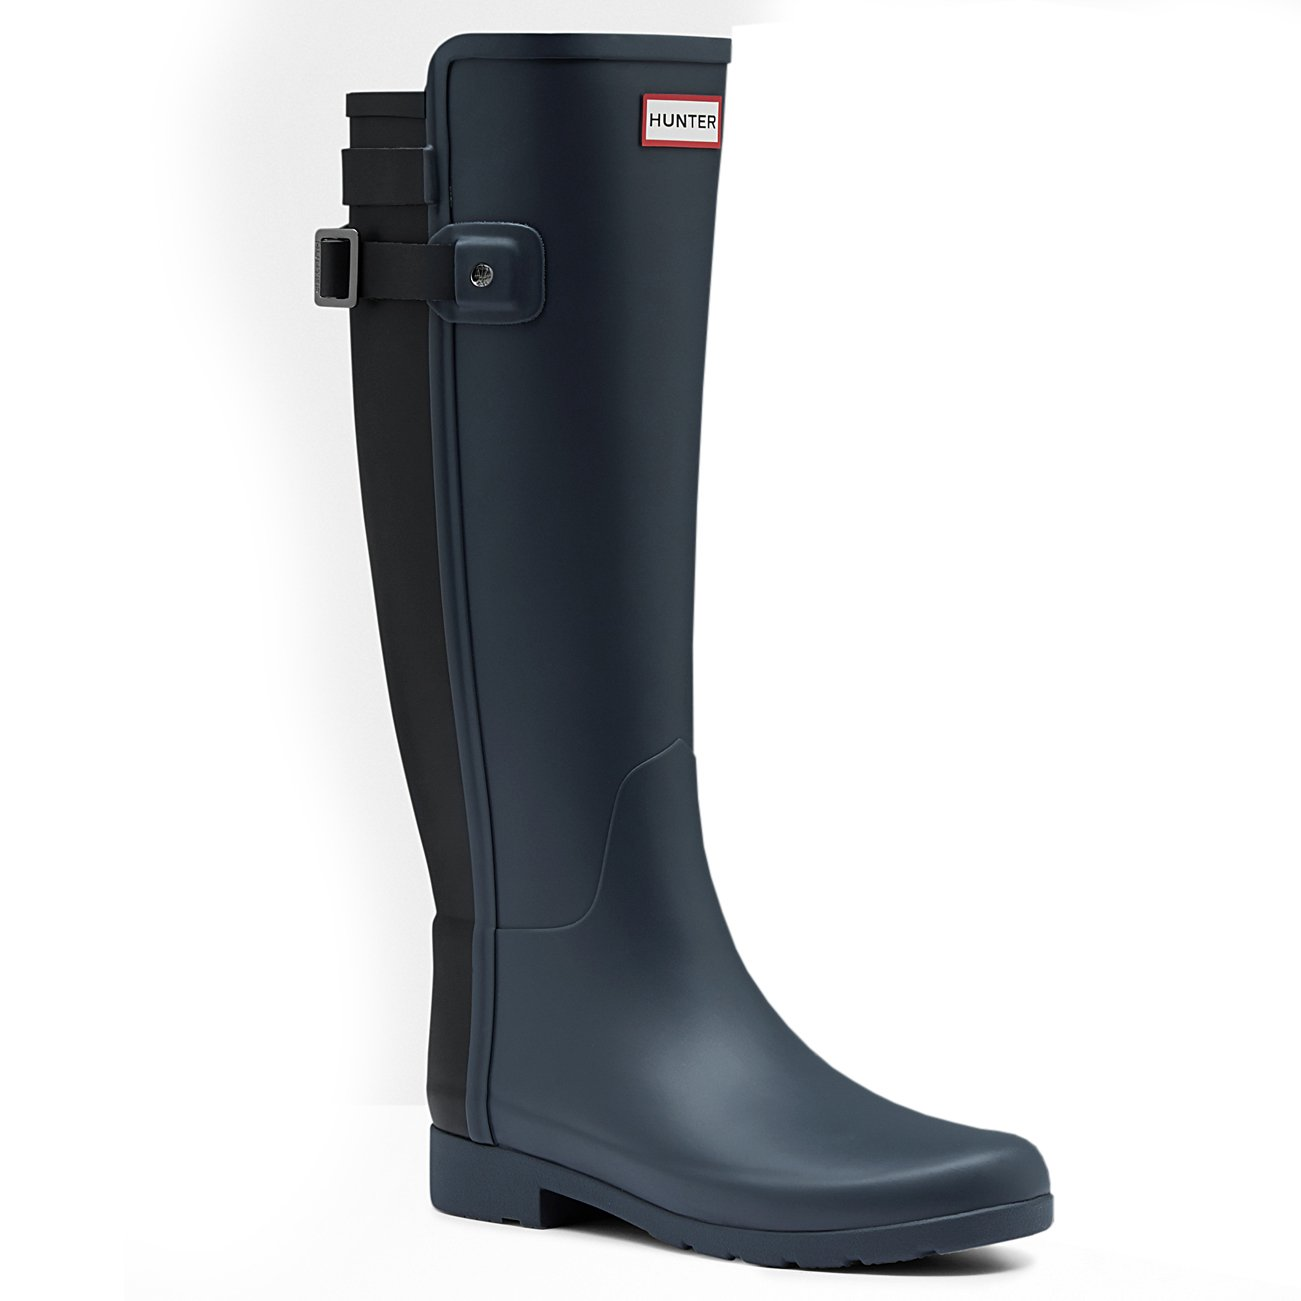 Womens Hunter Original Refined Back Strap Snow Wellingtons Rain Boot B01JOTV0JW 5 M US|Dark Slate/Black